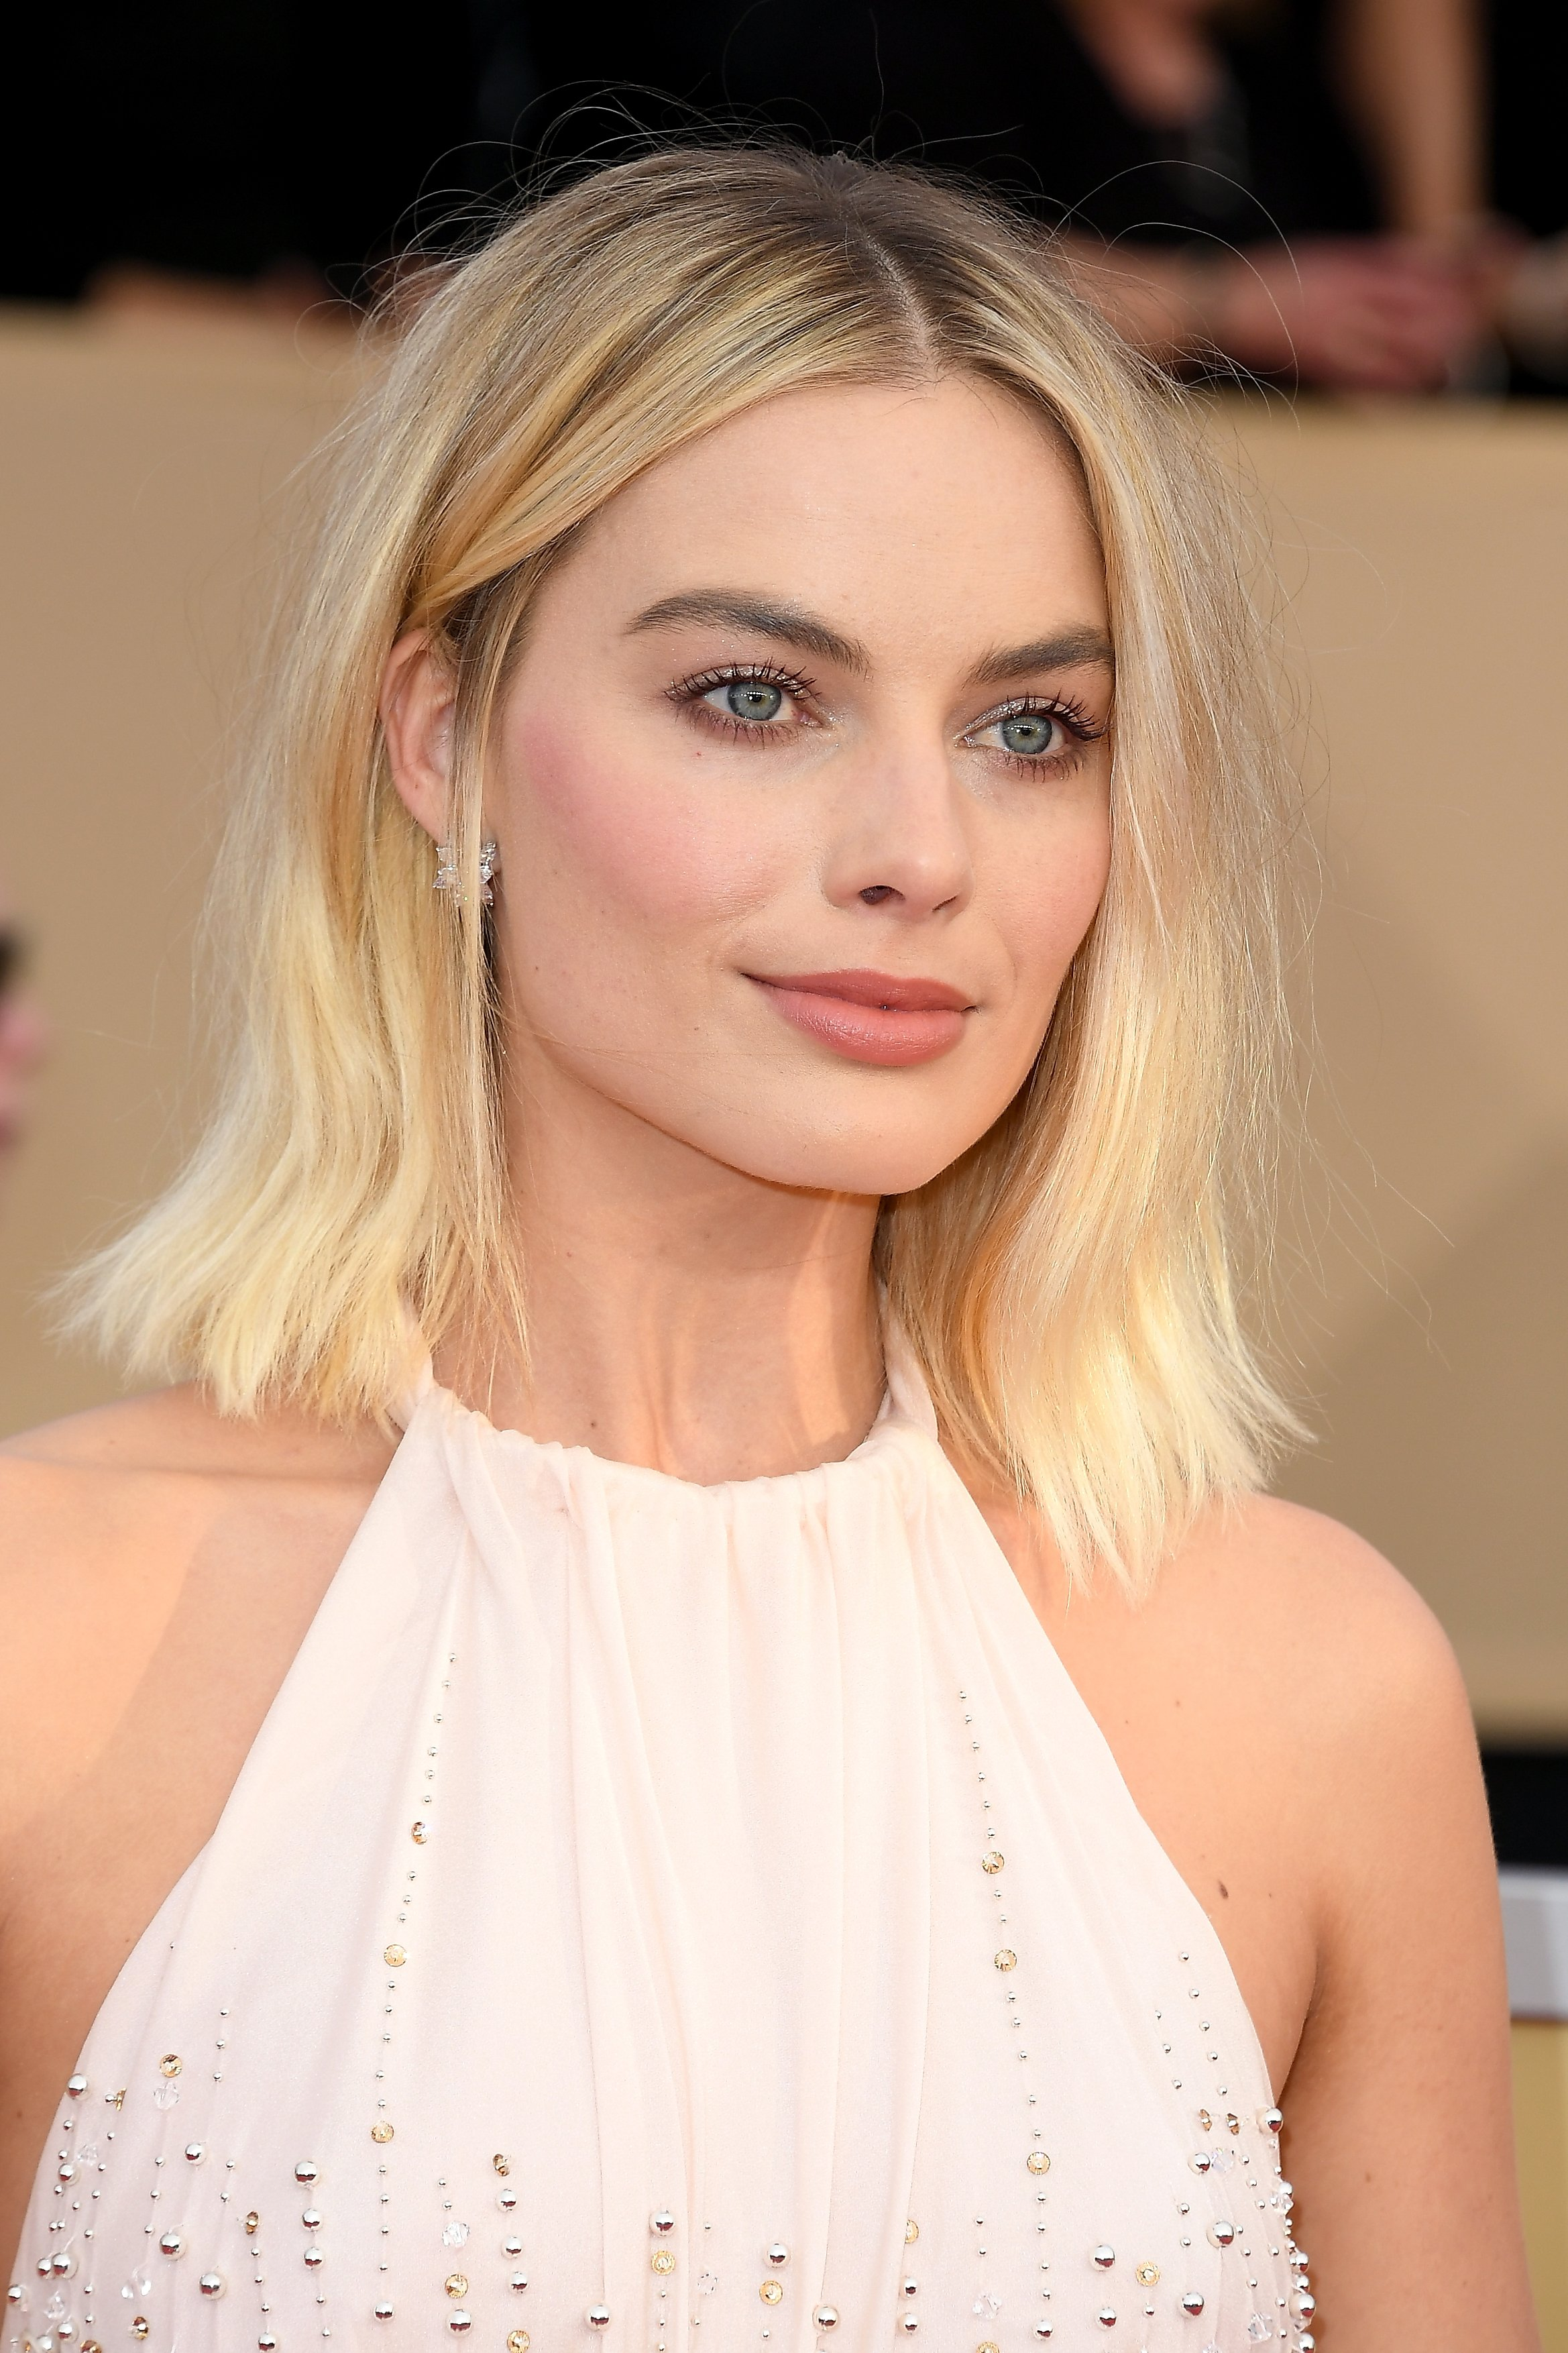 Margot Robbie attends the 24th Annual Screen Actors Guild Awards with hair by Moroccanoil Celebrity Hairstylist Bryce Scarlett. Photo Credit: Steve Granitz Steve Granitz